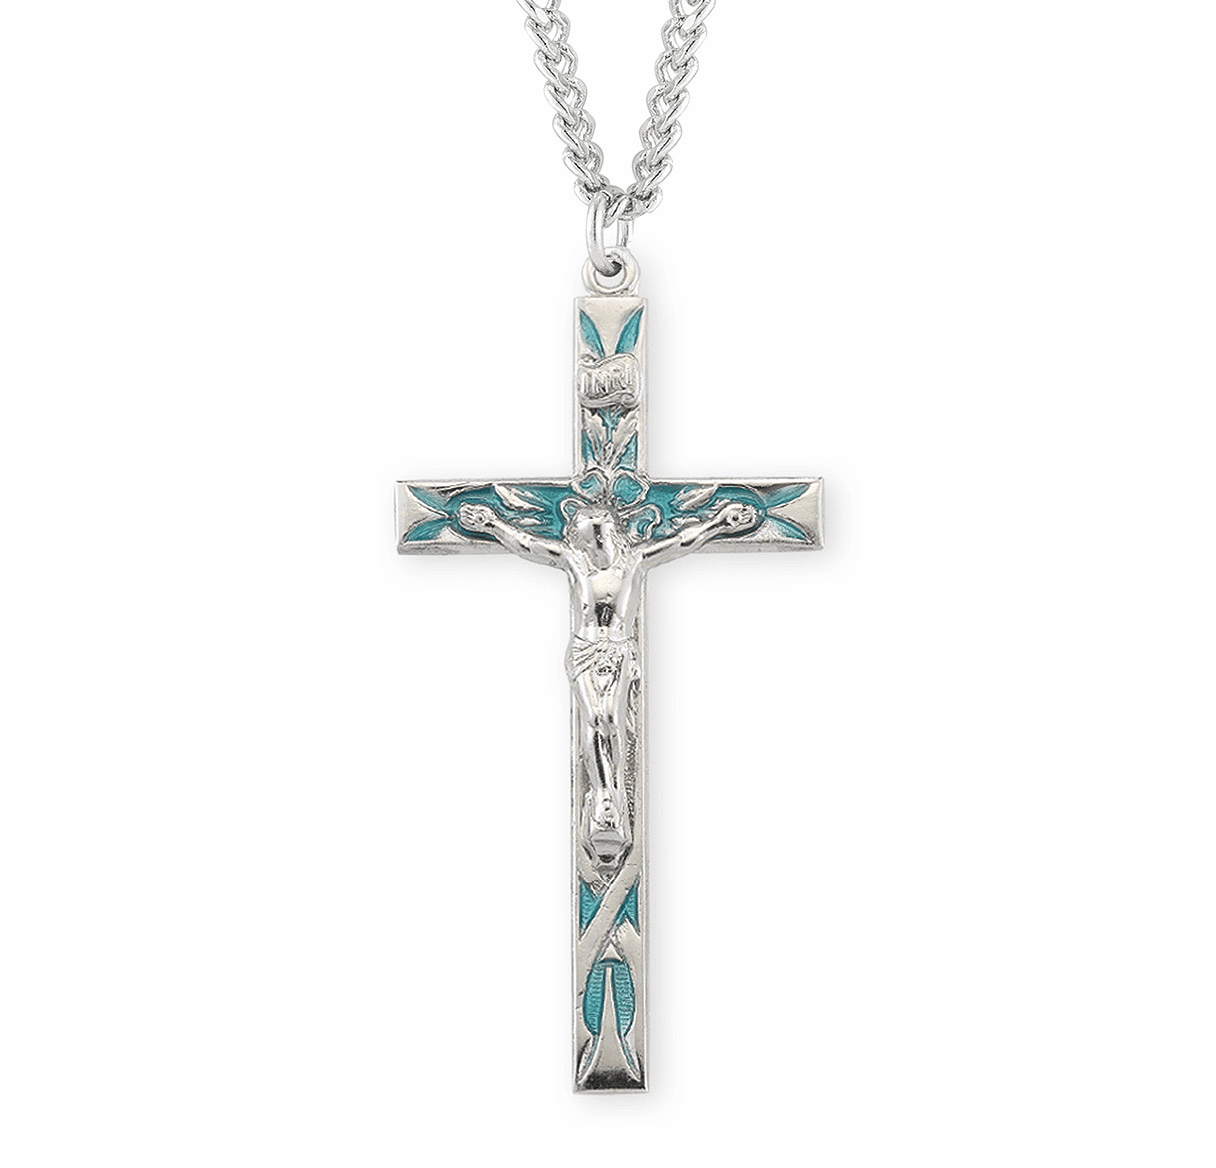 HMH Religious High Polished Blue Enameled Sterling Silver Crucifix